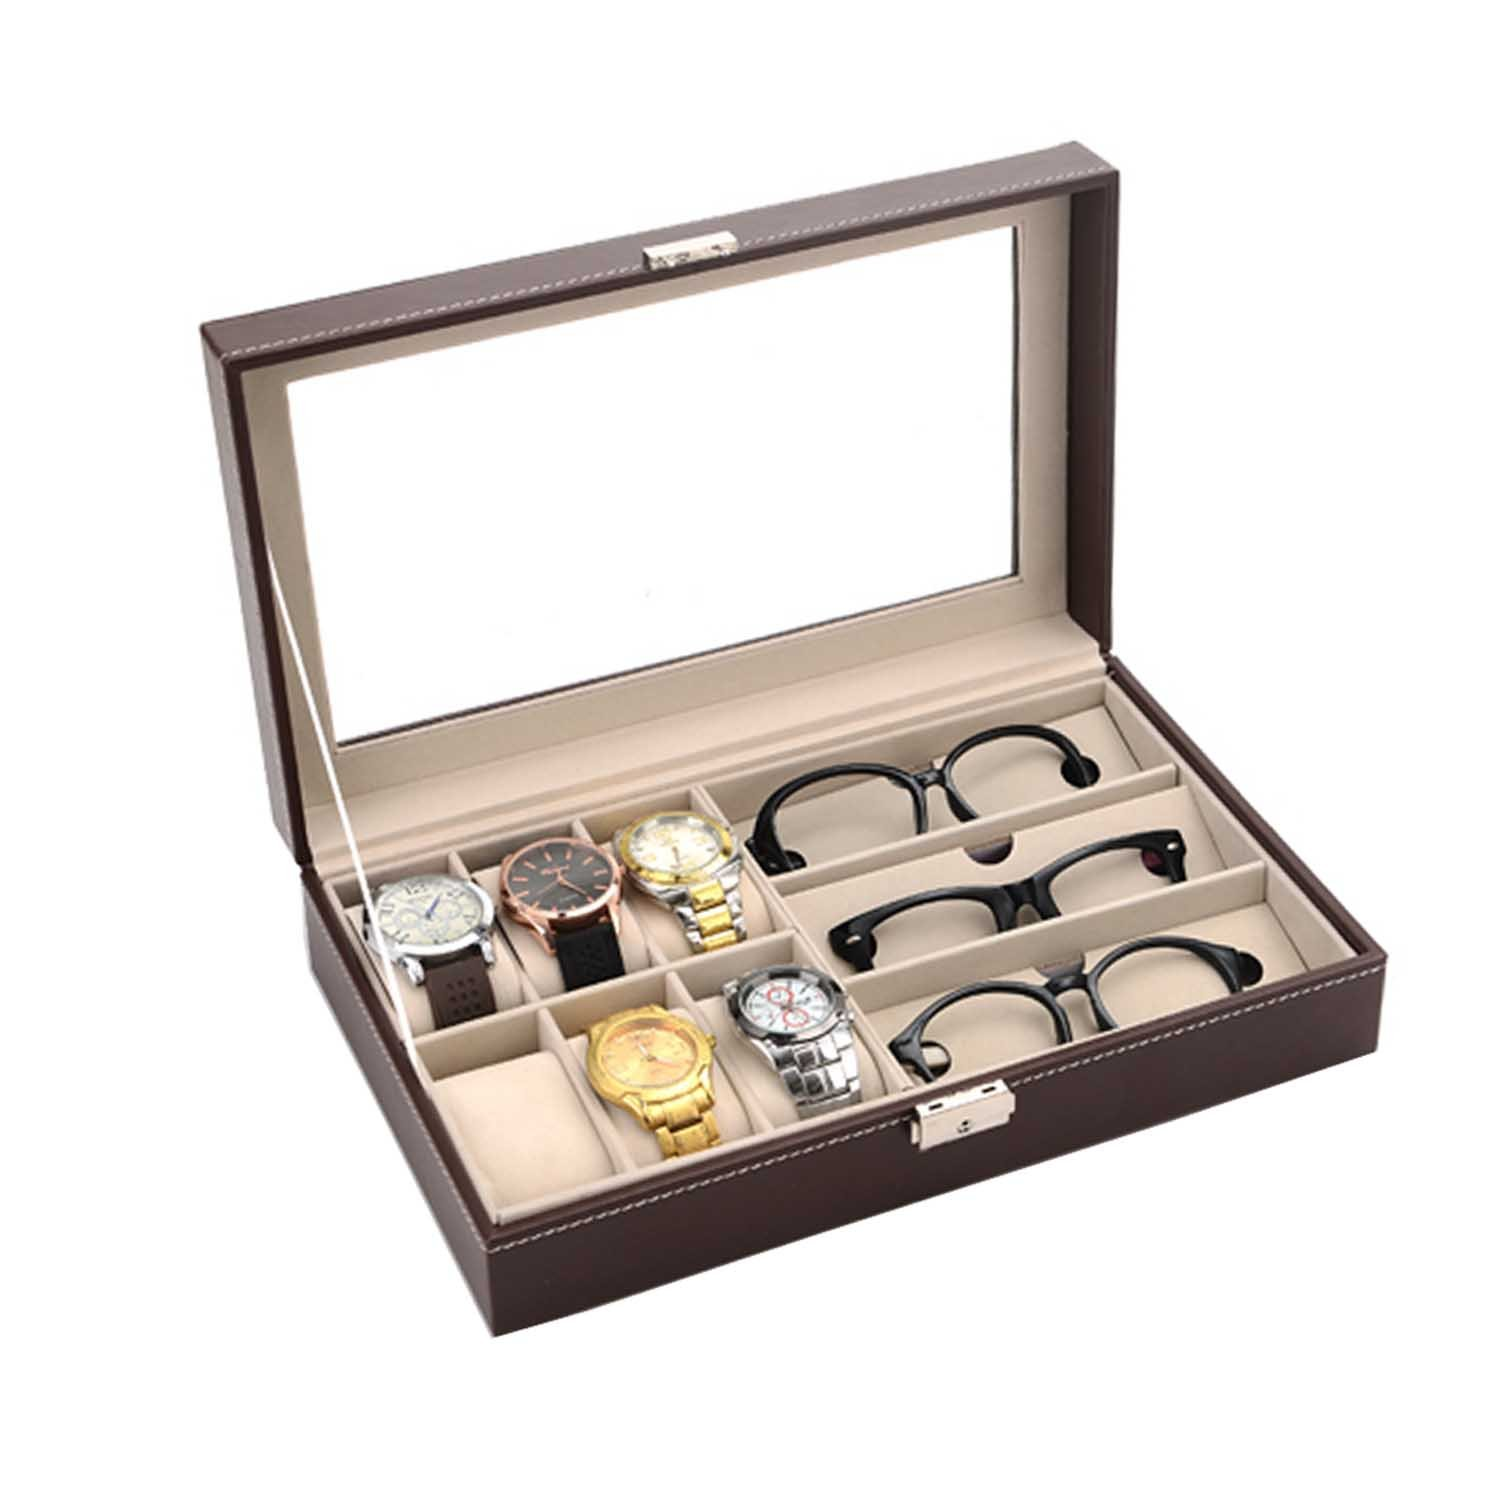 365ae9d2689 Amazon.com  Autoark Leather 6 Watch Box Jewelry Case and 3 Piece Eyeglasses  Storage and Sunglass Glasses Display Case Organizer